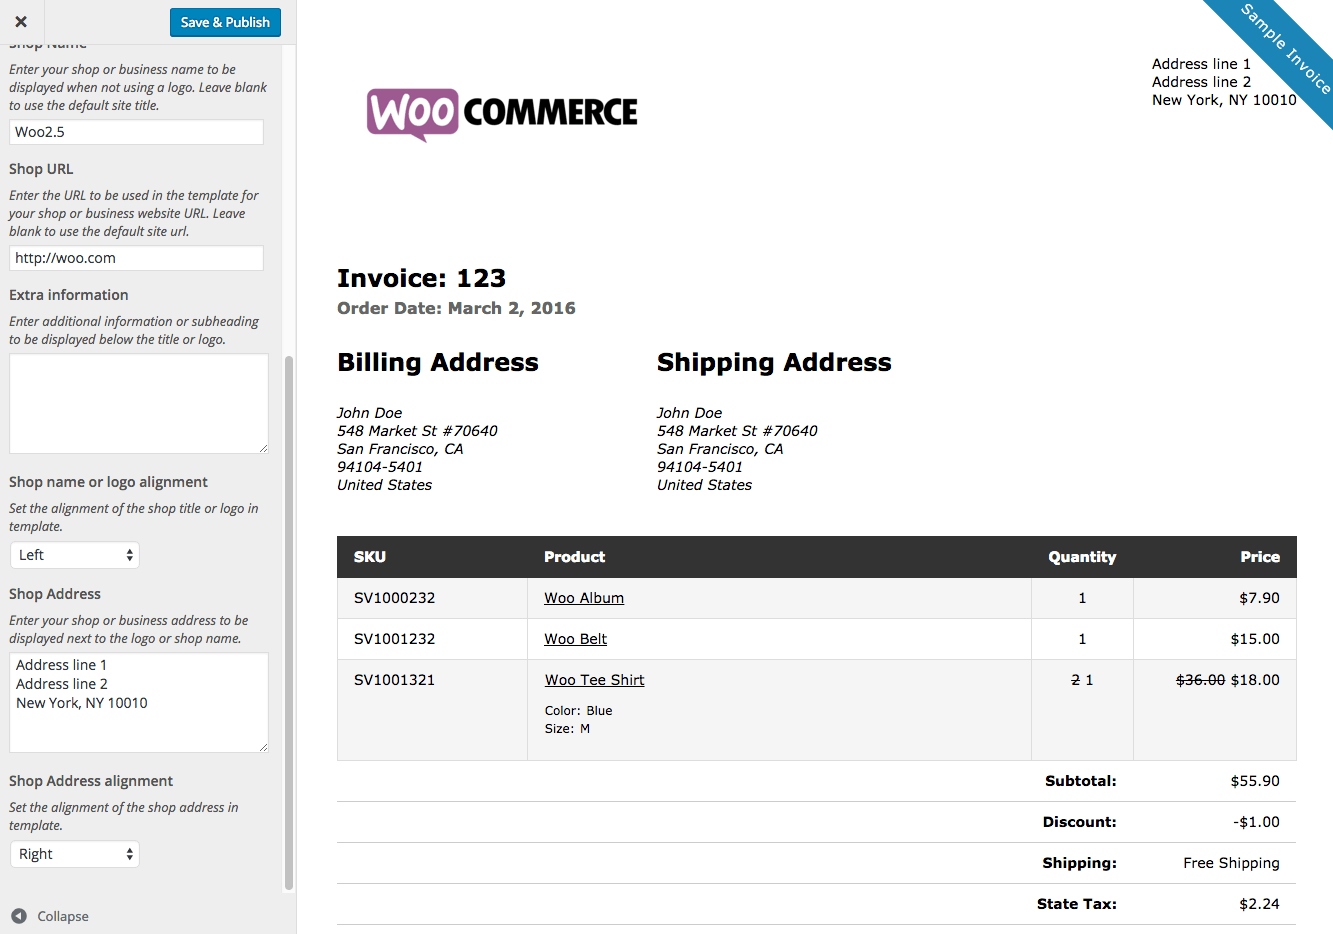 Soulfulpowerus  Pleasant Woocommerce Print Invoices Amp Packing Lists  Woocommerce Docs With Interesting Woocommerce Print Invoices  Packing Lists Customizer With Astonishing Hand Receipt Air Force Also Monthly Receipt Organizer In Addition Taxi Receipt Blank And Washington Flyer Taxi Receipt As Well As Cash Receipt Forms Additionally Best Receipt Scanner App Android From Docswoocommercecom With Soulfulpowerus  Interesting Woocommerce Print Invoices Amp Packing Lists  Woocommerce Docs With Astonishing Woocommerce Print Invoices  Packing Lists Customizer And Pleasant Hand Receipt Air Force Also Monthly Receipt Organizer In Addition Taxi Receipt Blank From Docswoocommercecom